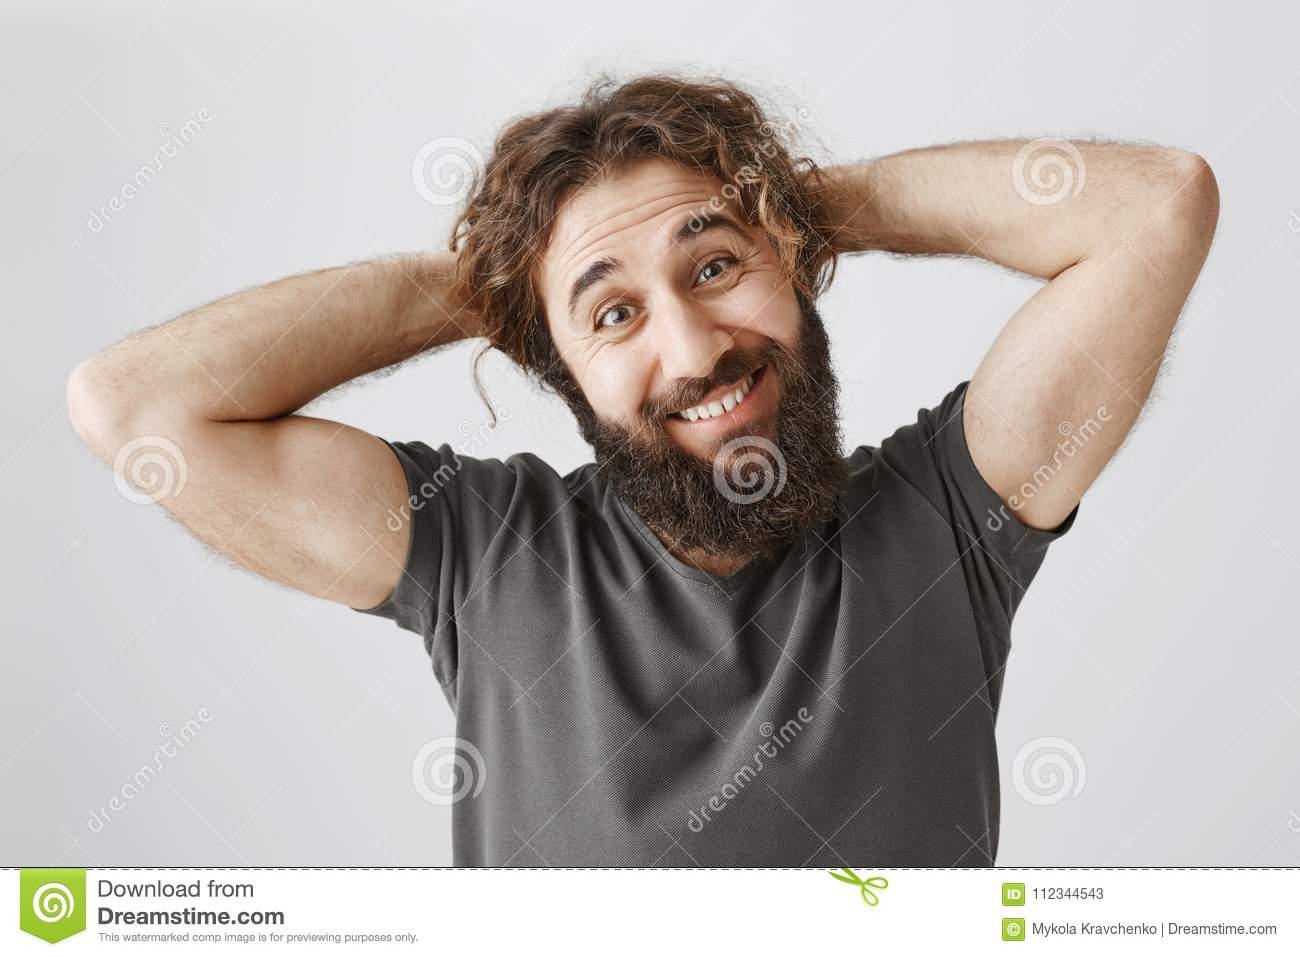 Let Me Scrape Hair In Ponytail. Portrait Of Funny Handsome Arabian Guy With  Beard Holding Hands Behind Head And Smiling Stock Image - Image of eastern,  advertising: 112344543